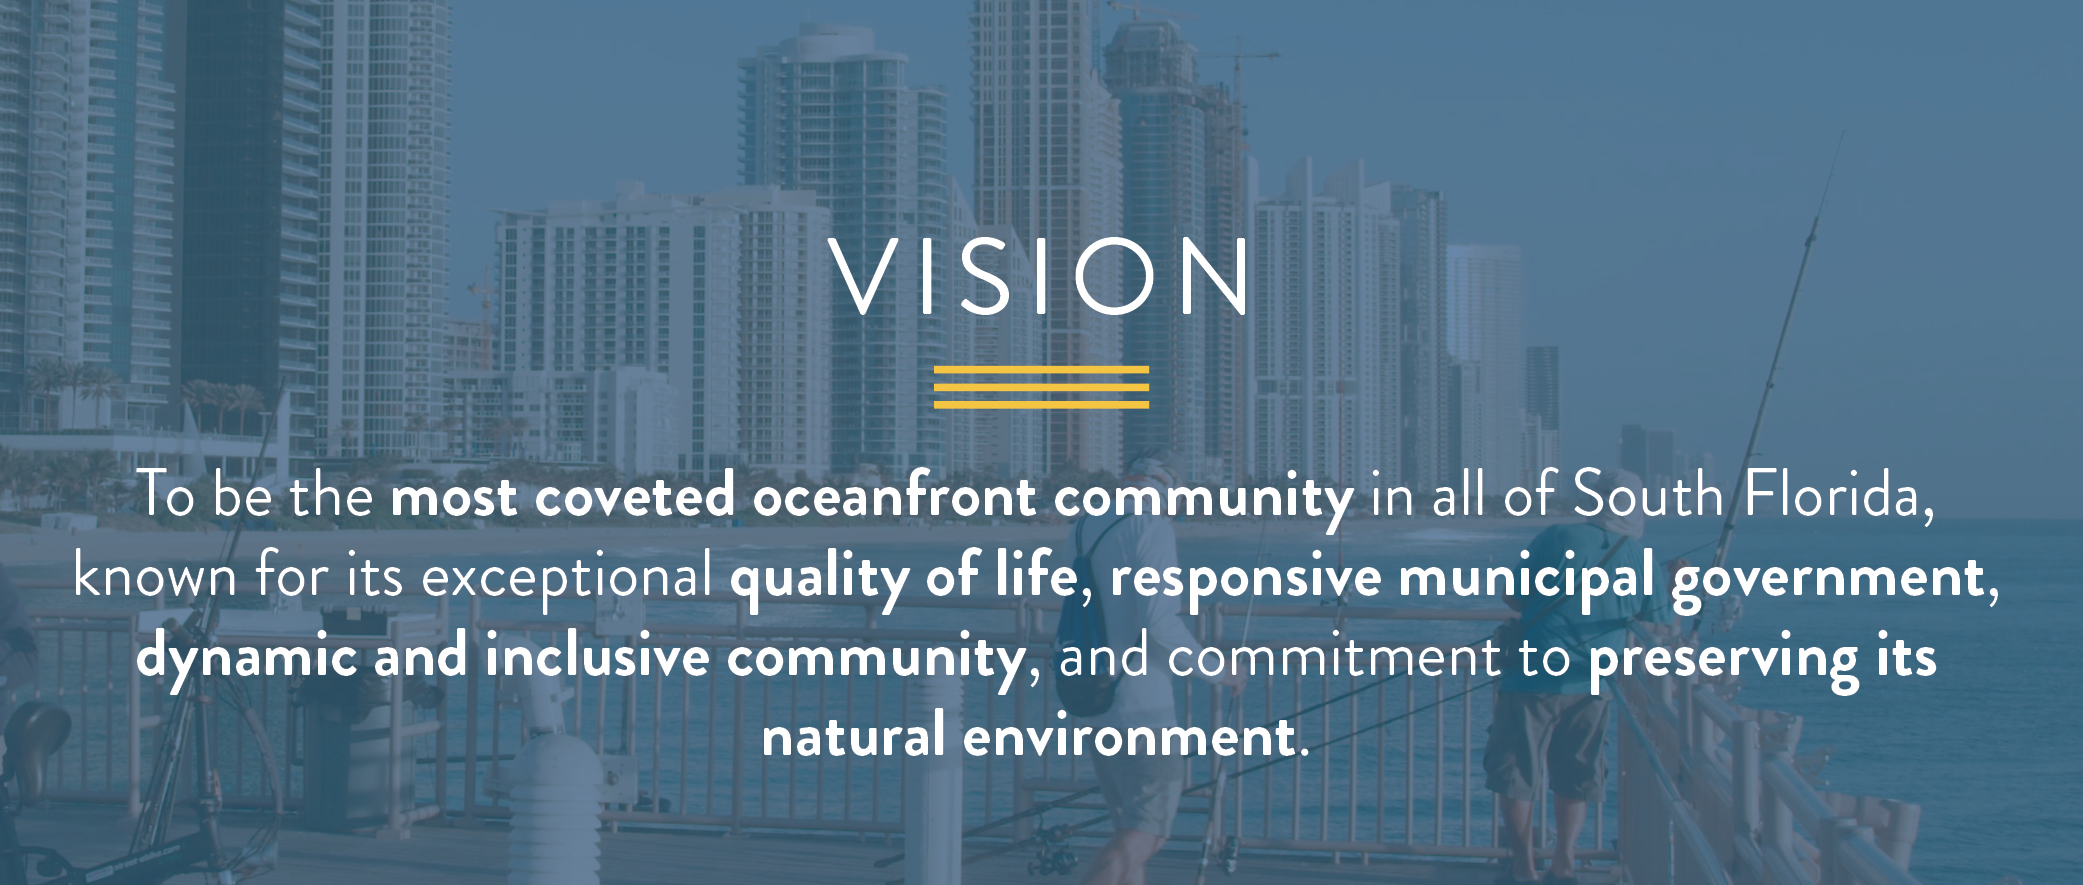 The vision is to be the most coveted oceanfront community in all of South Florida, known for its exceptional quality of life, responsive municipal government, dynamic and inclusive community, and commitment to preserving its natural environment.